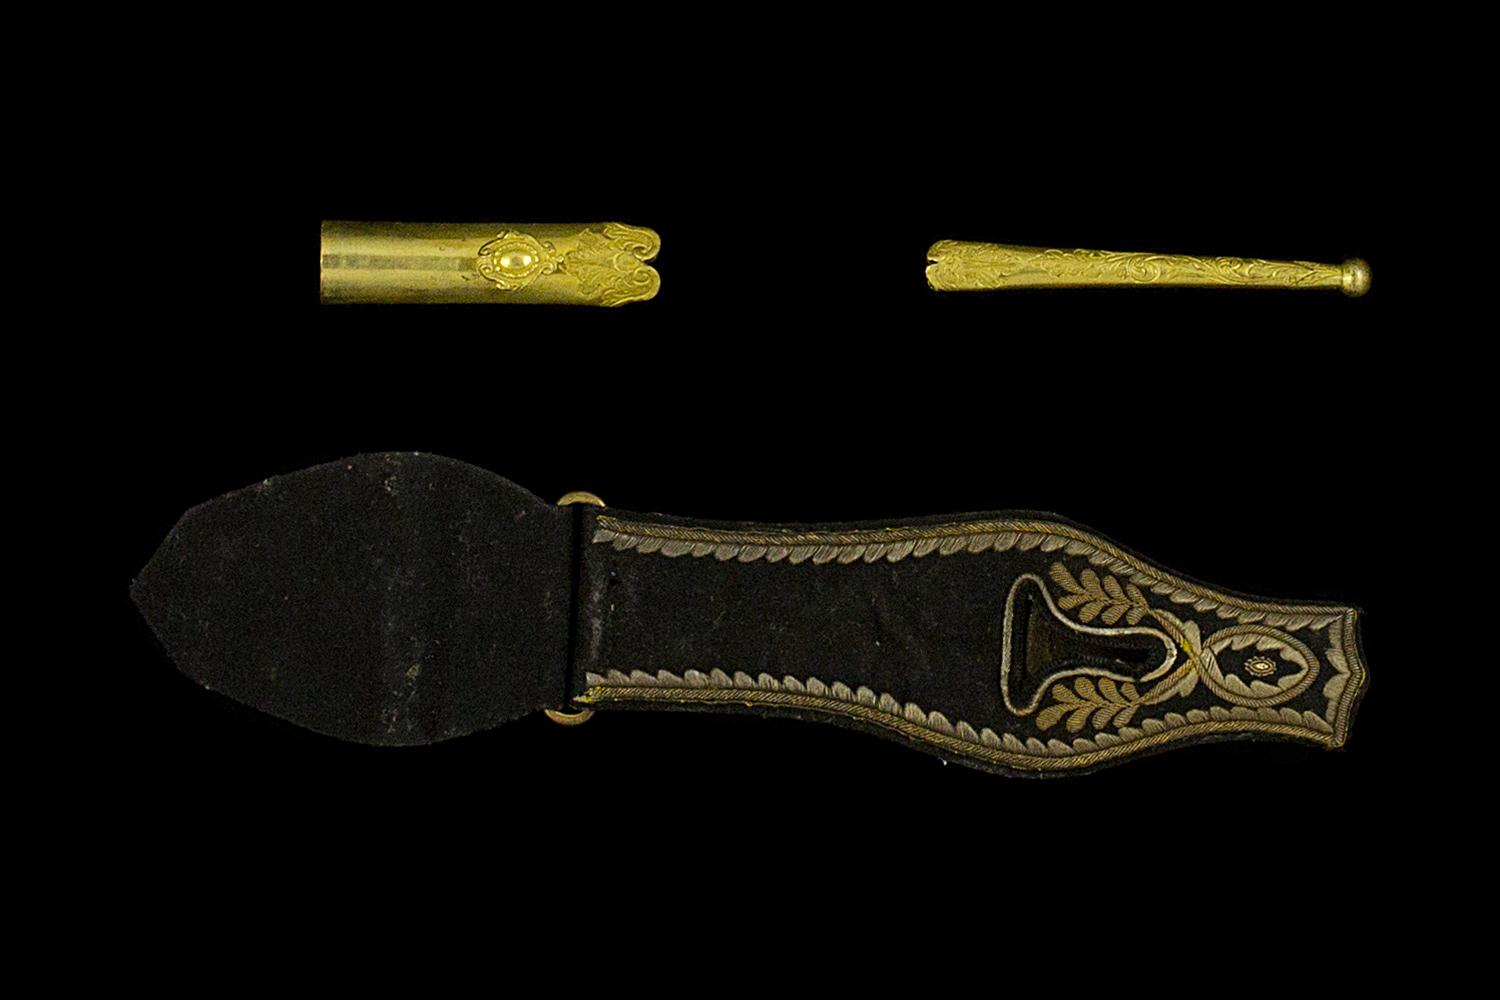 S000067_Spanish_Smallsword_Detail_Scabbard_